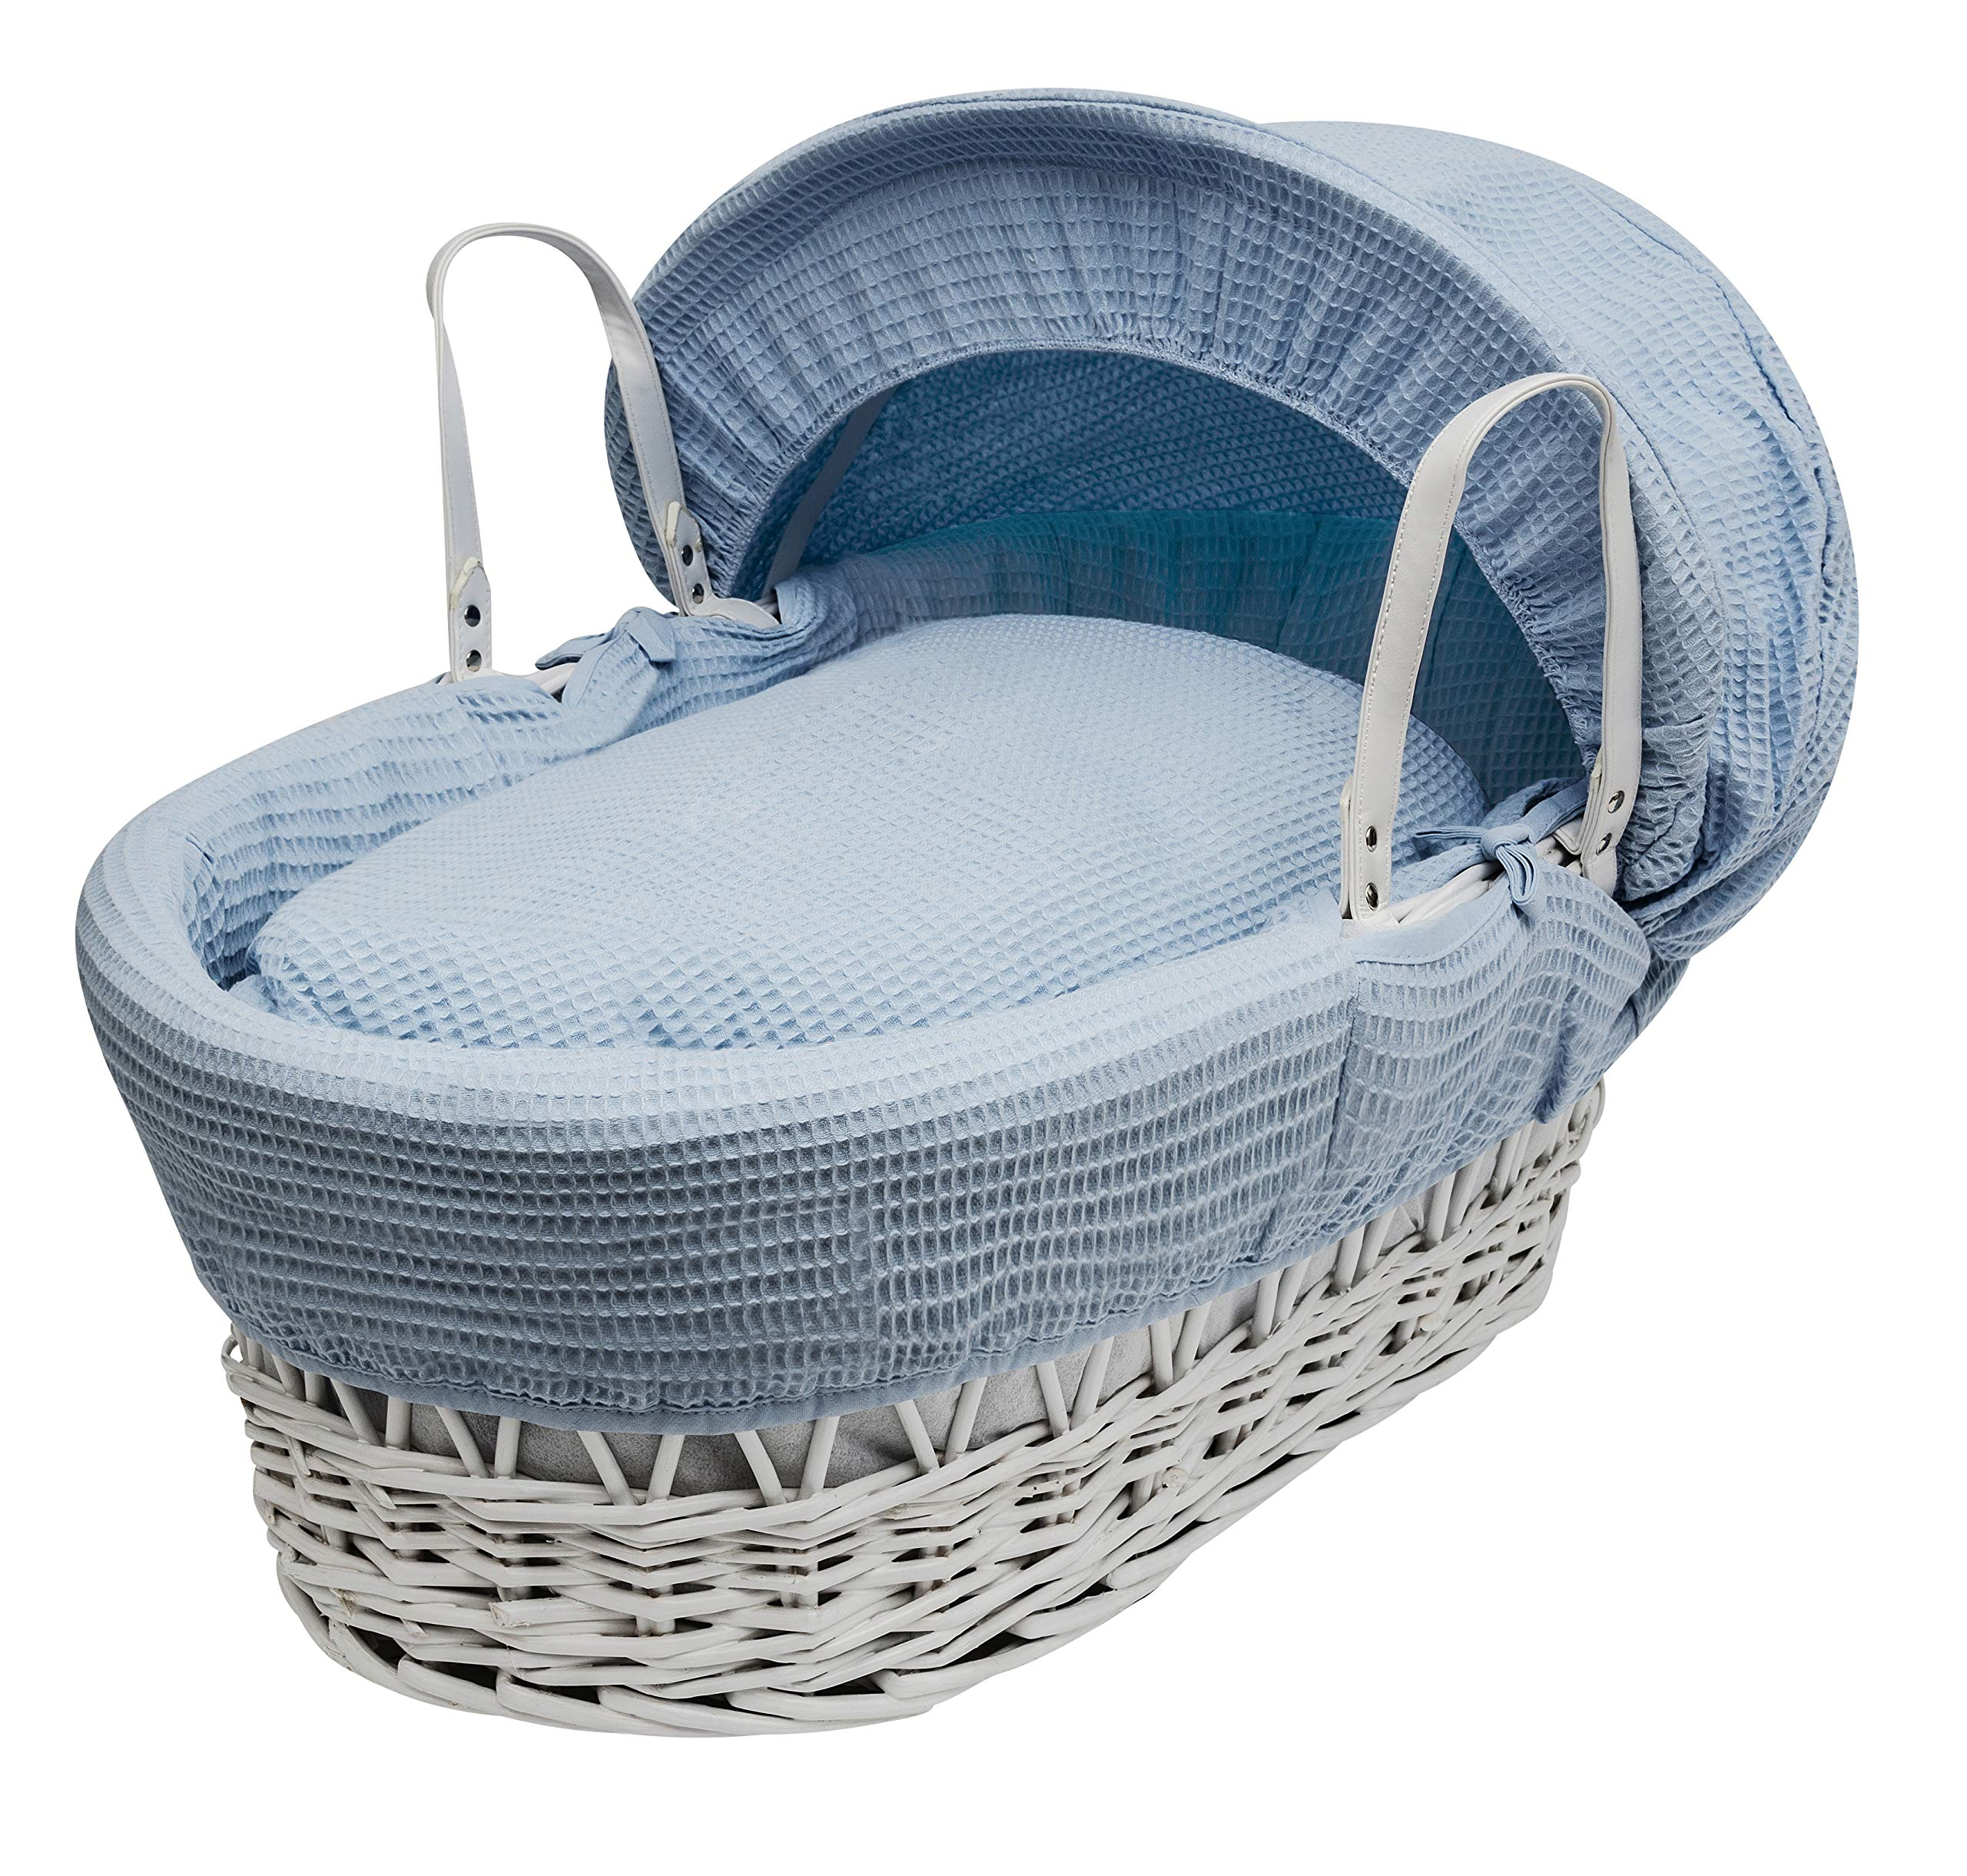 Blue Waffle Moses Basket Dressings only(Basket not included) Elegant Baby Dressings For Moses Baskets Includes Padding,Quilt, Liner,Fabric Hood Basket and Mattress and Hood bars are NOT included 1